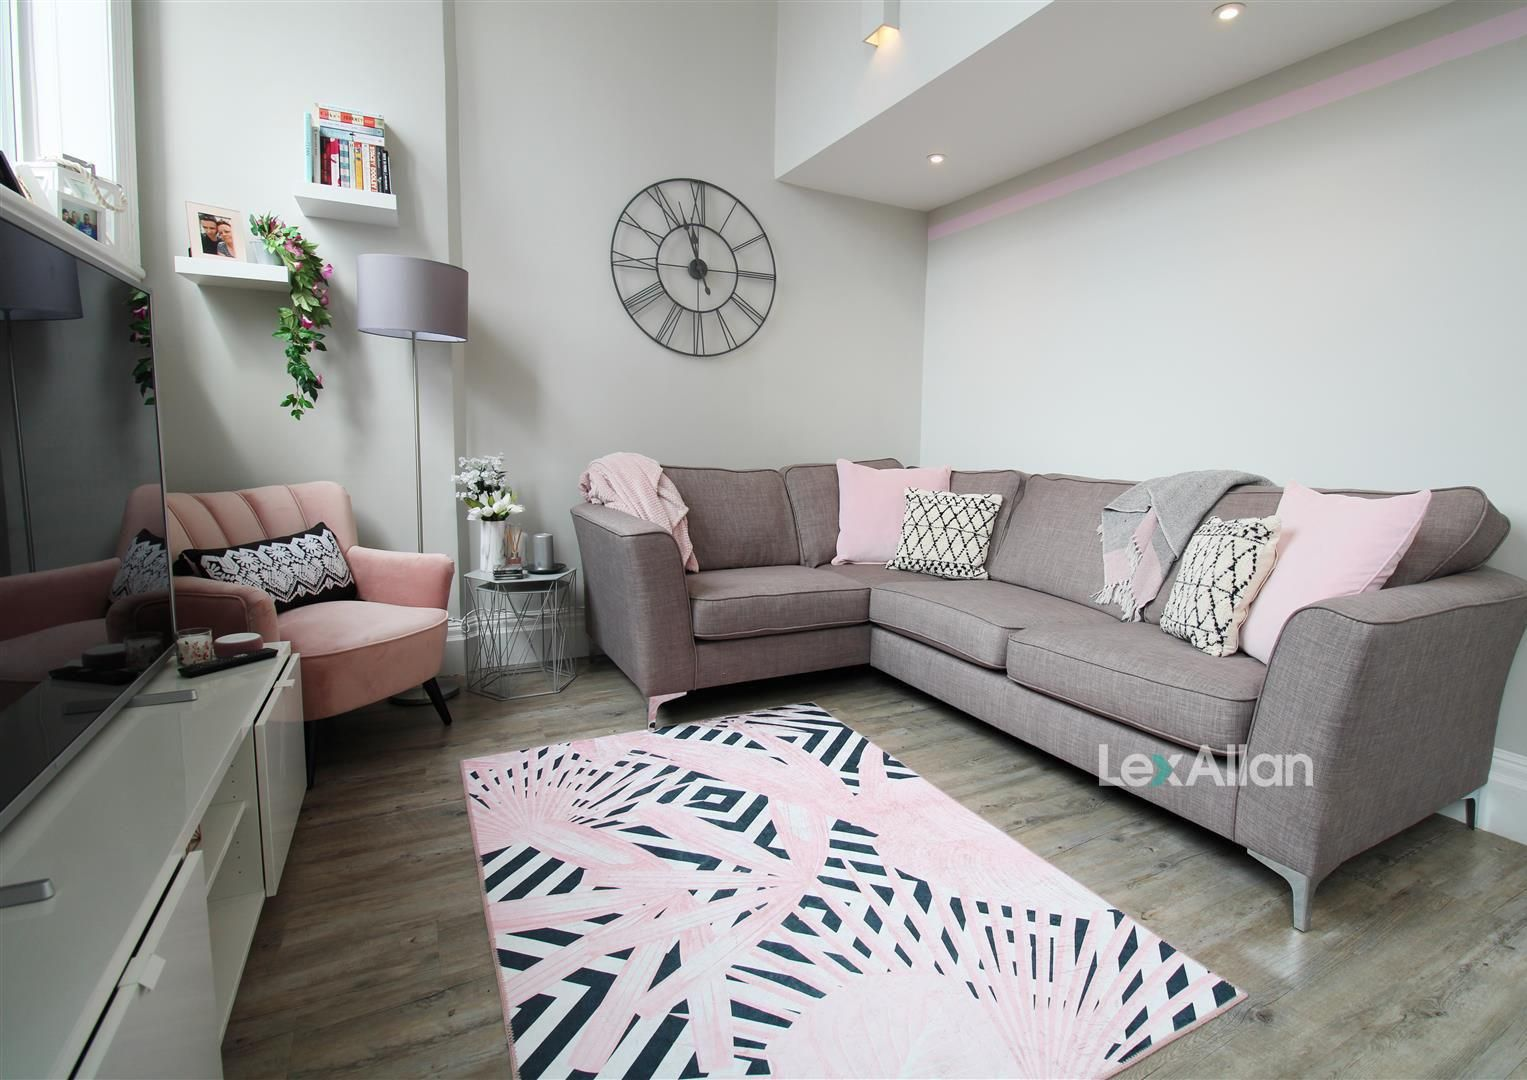 1 bed apartment for sale, DY8